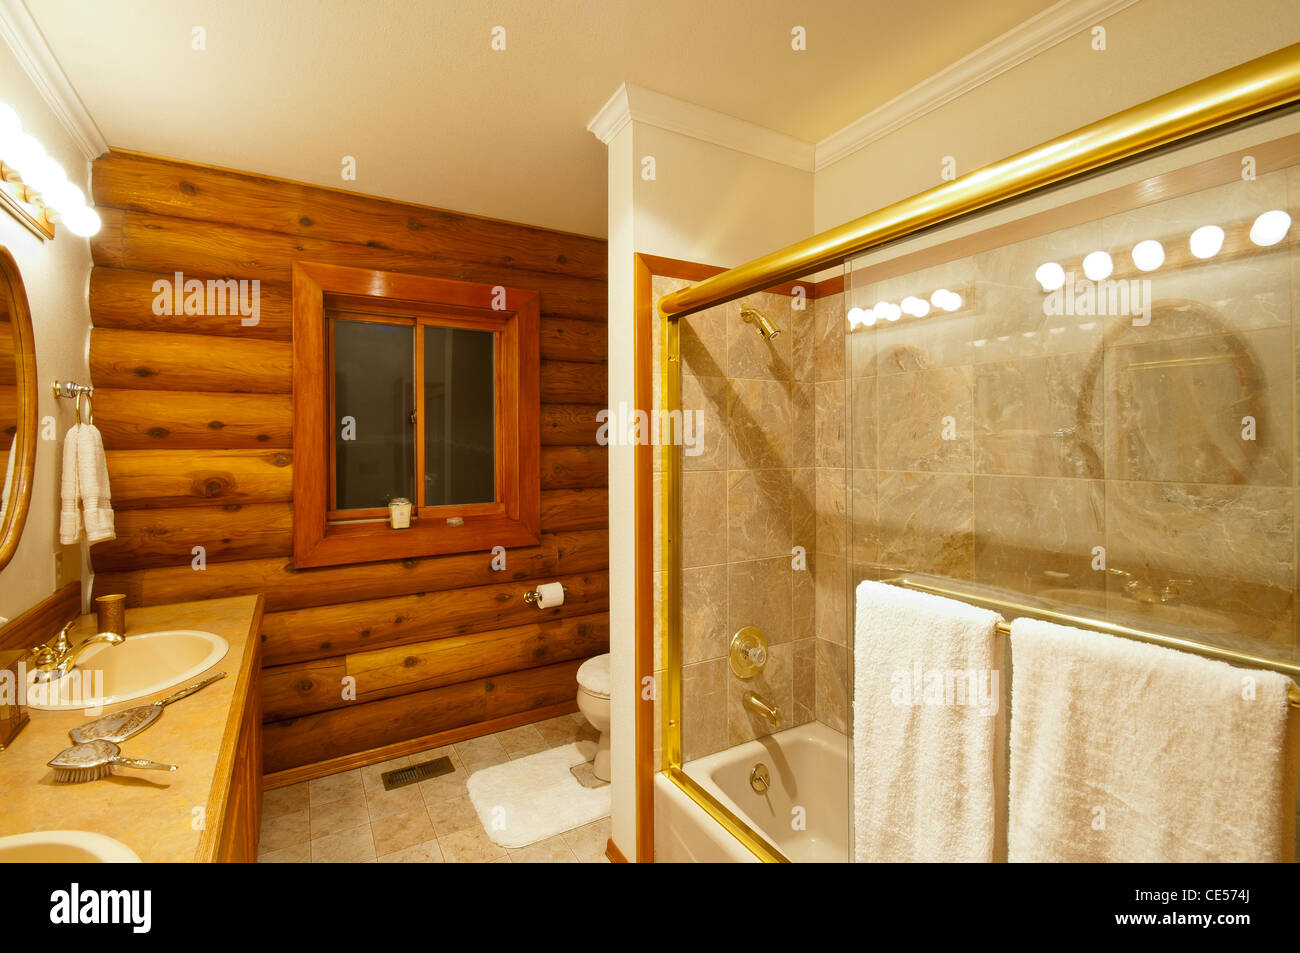 Bathroom In Luxury Log Cabin Featuring Tub With Glass Shower Enclosure,  Cedar Logs, Sinks And Counter Top